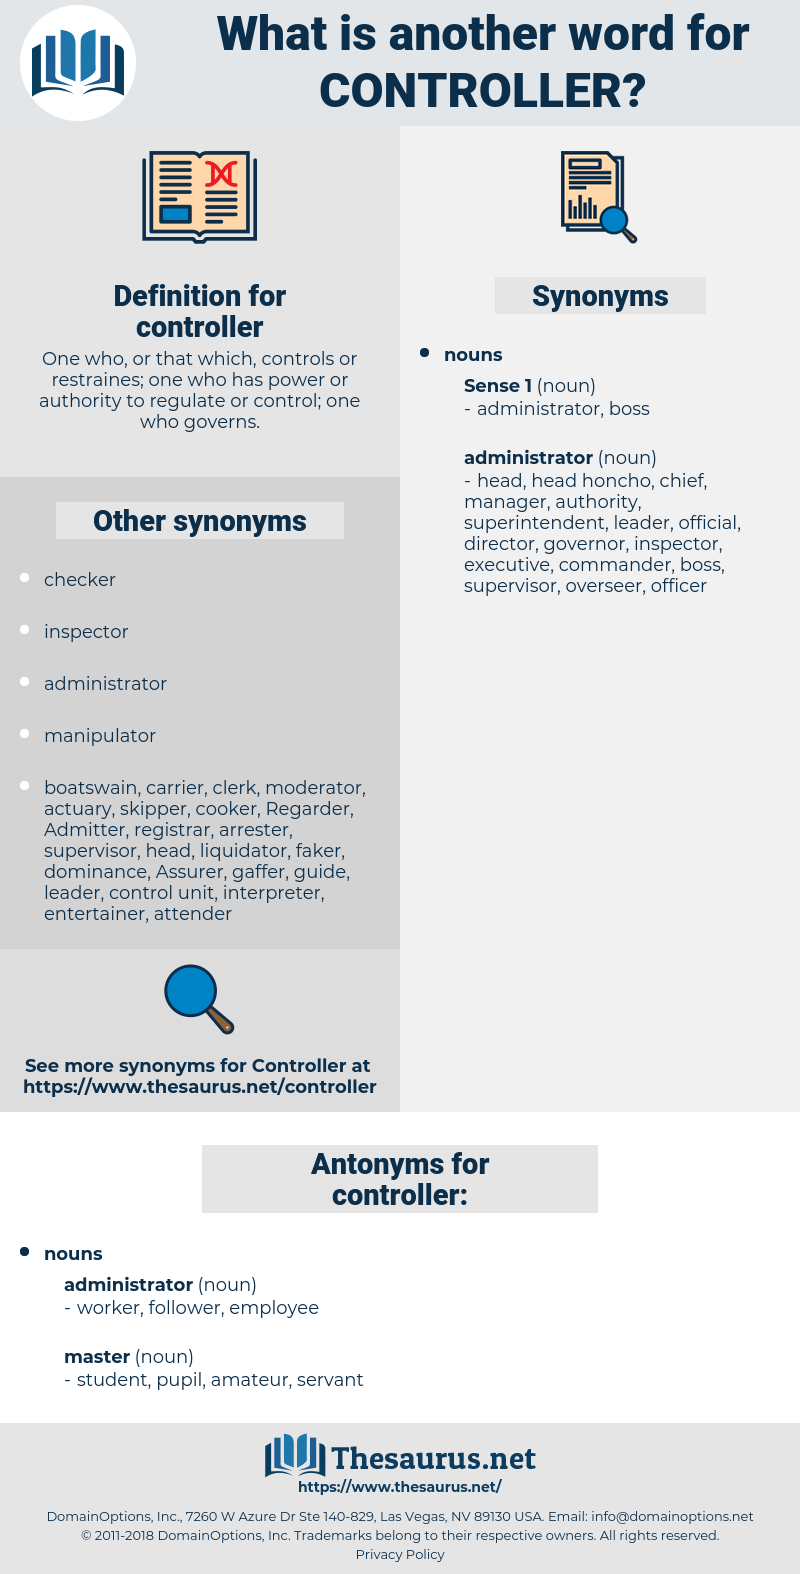 Synonyms for CONTROLLER, Antonyms for CONTROLLER - Thesaurus net